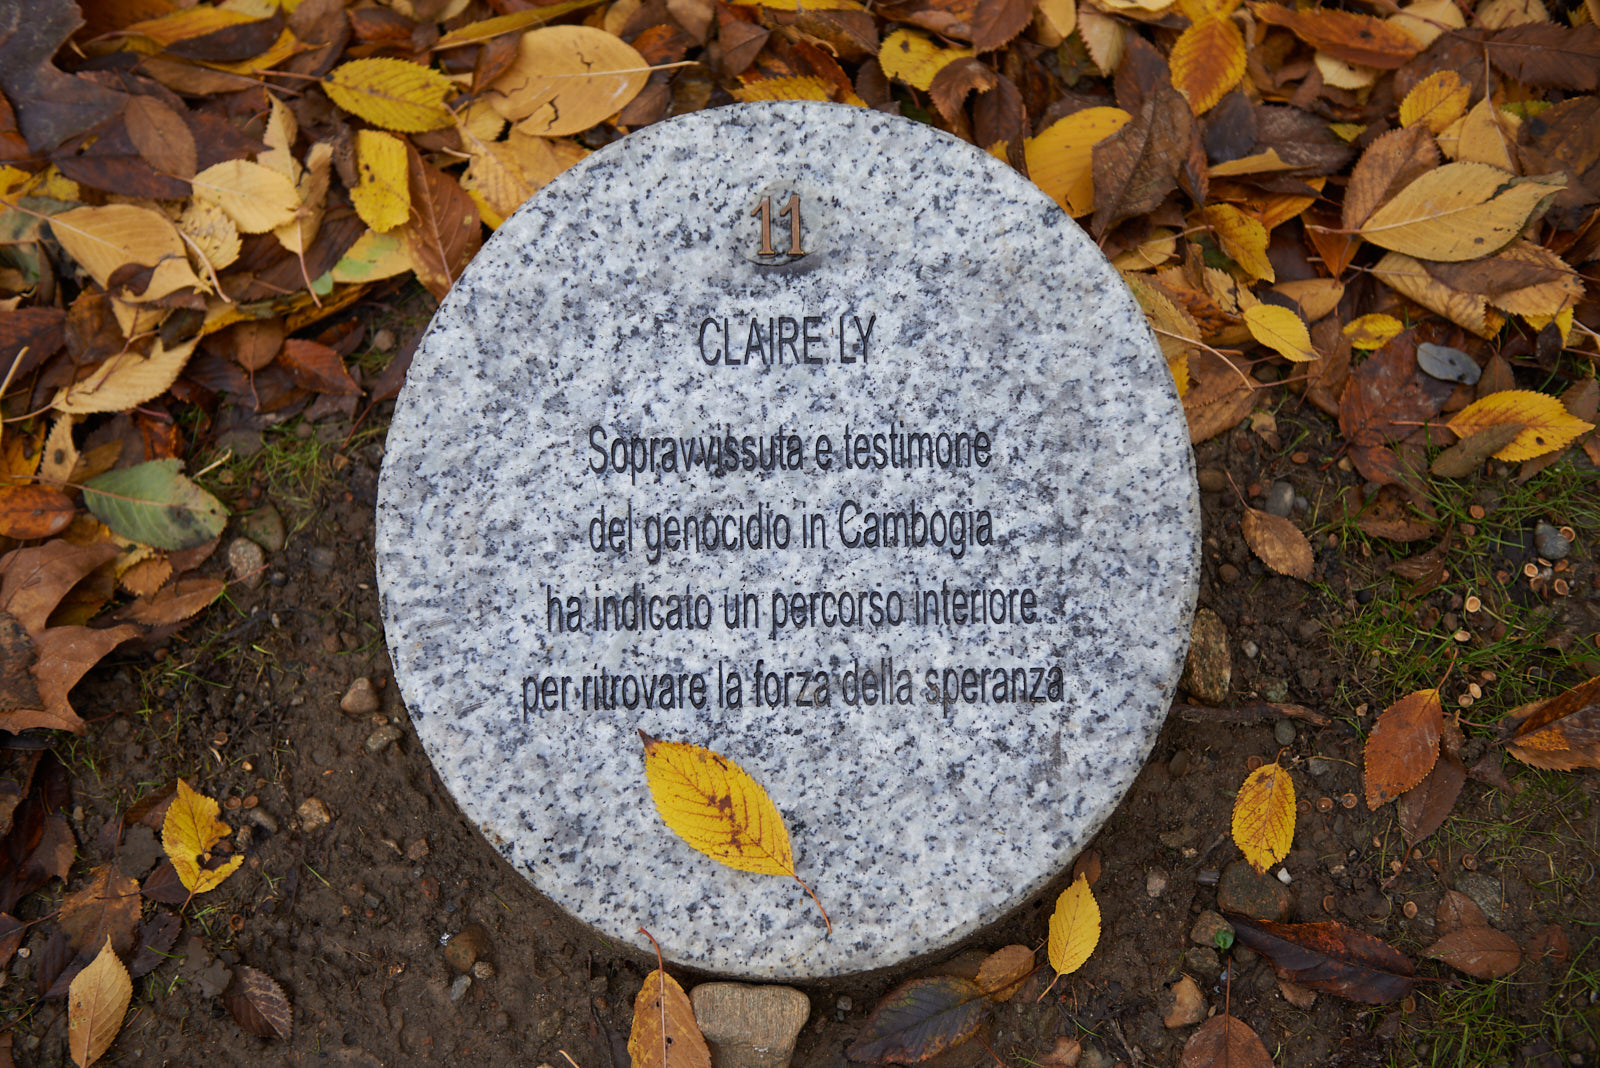 The memorial stone dedicated to Claire Ly